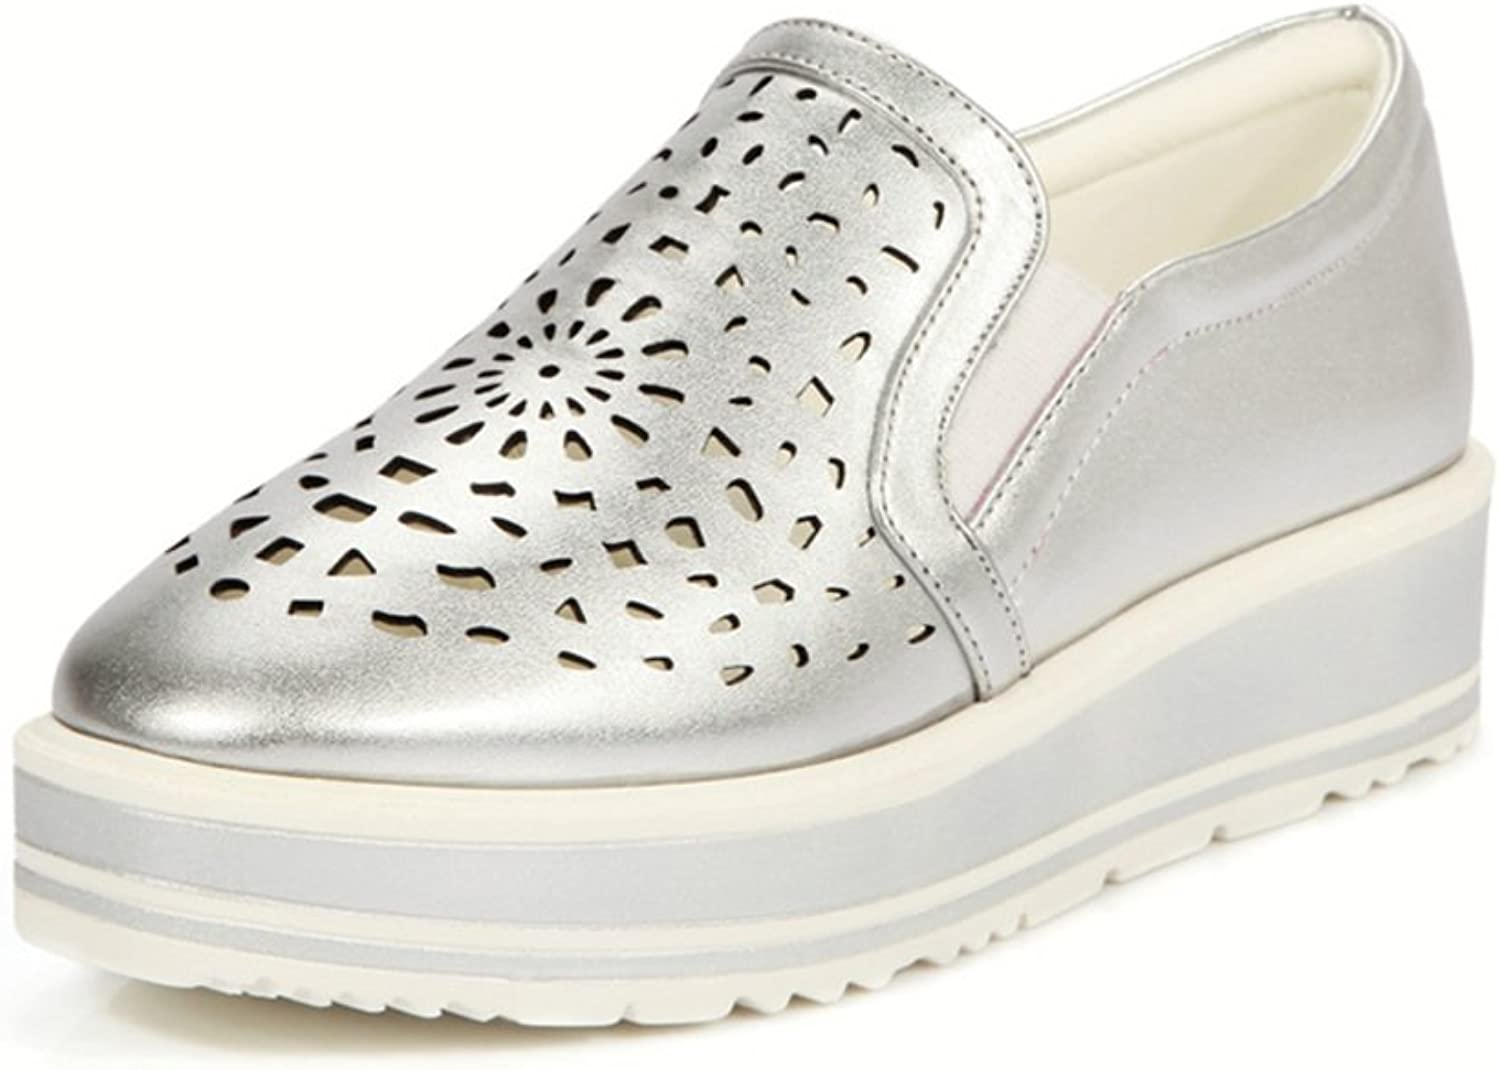 RHFDVGDS thick-soled loafer shoes Hollow feet ladies flat shoes in spring cake recreational shoes